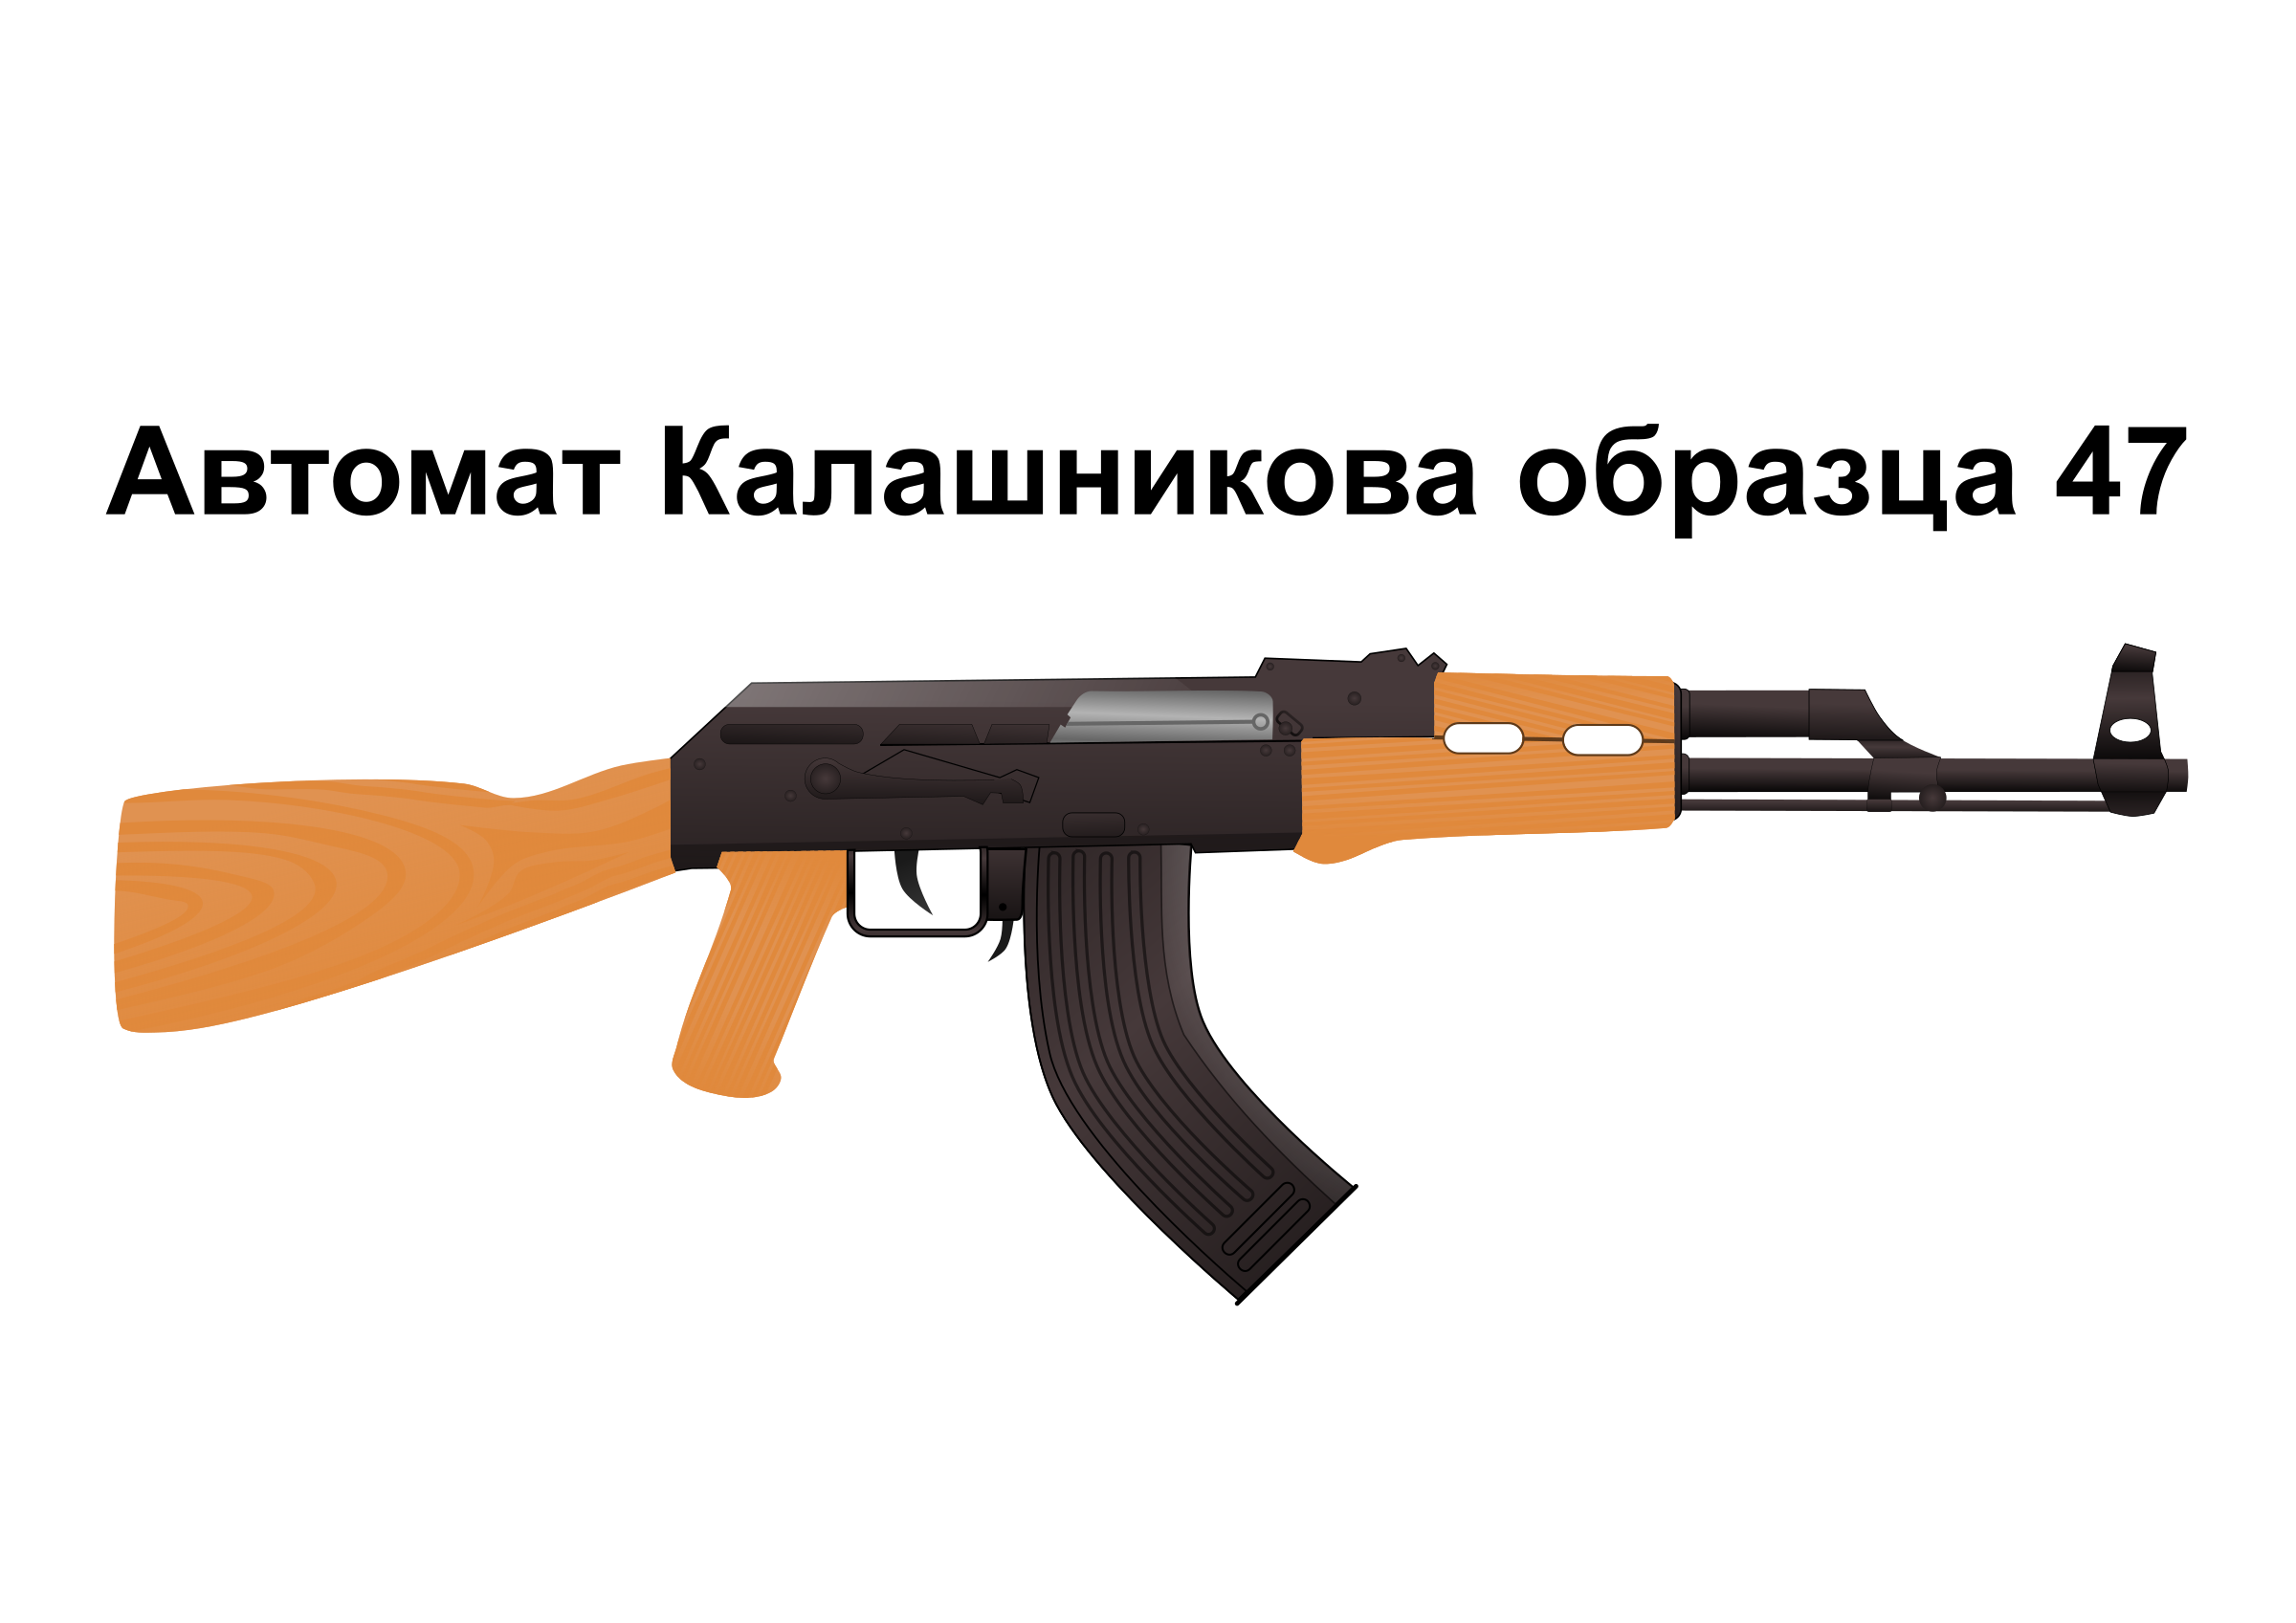 Ak drawing weapon. Assault rifle icons png